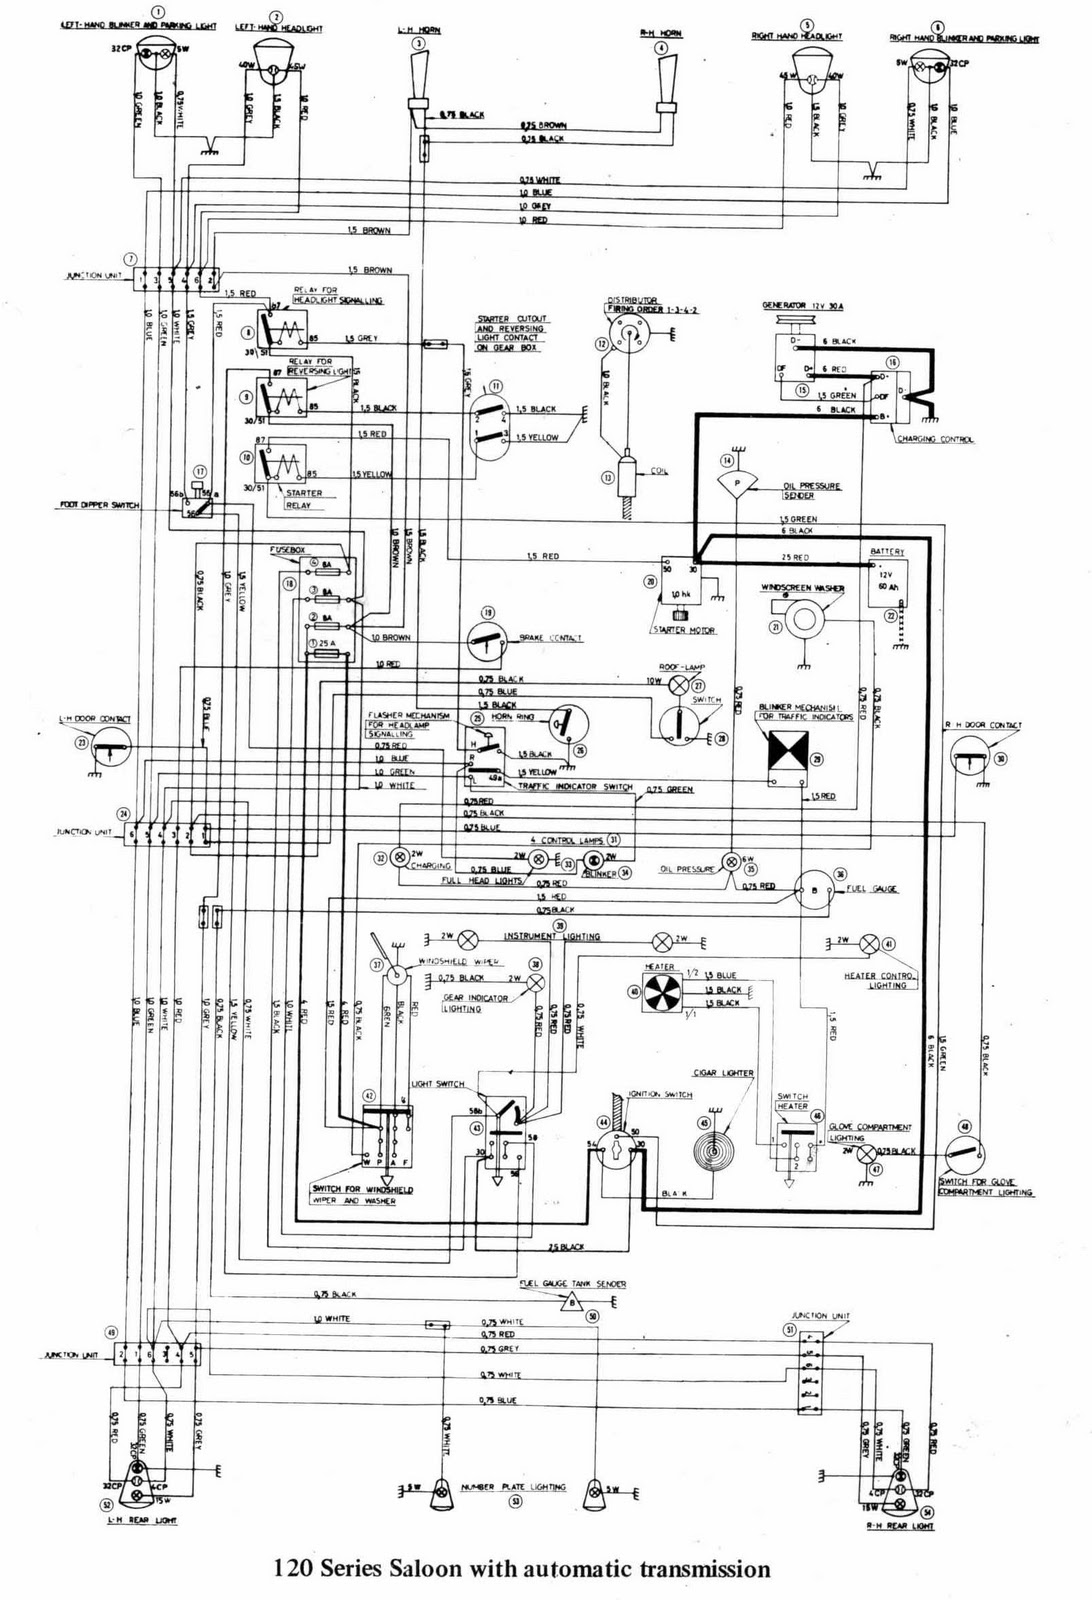 Volvo C70 Wiring Diagram - Wiring Diagram All disk-about -  disk-about.huevoprint.it | Volvo V70 Ignition Wiring Diagram |  | Huevoprint